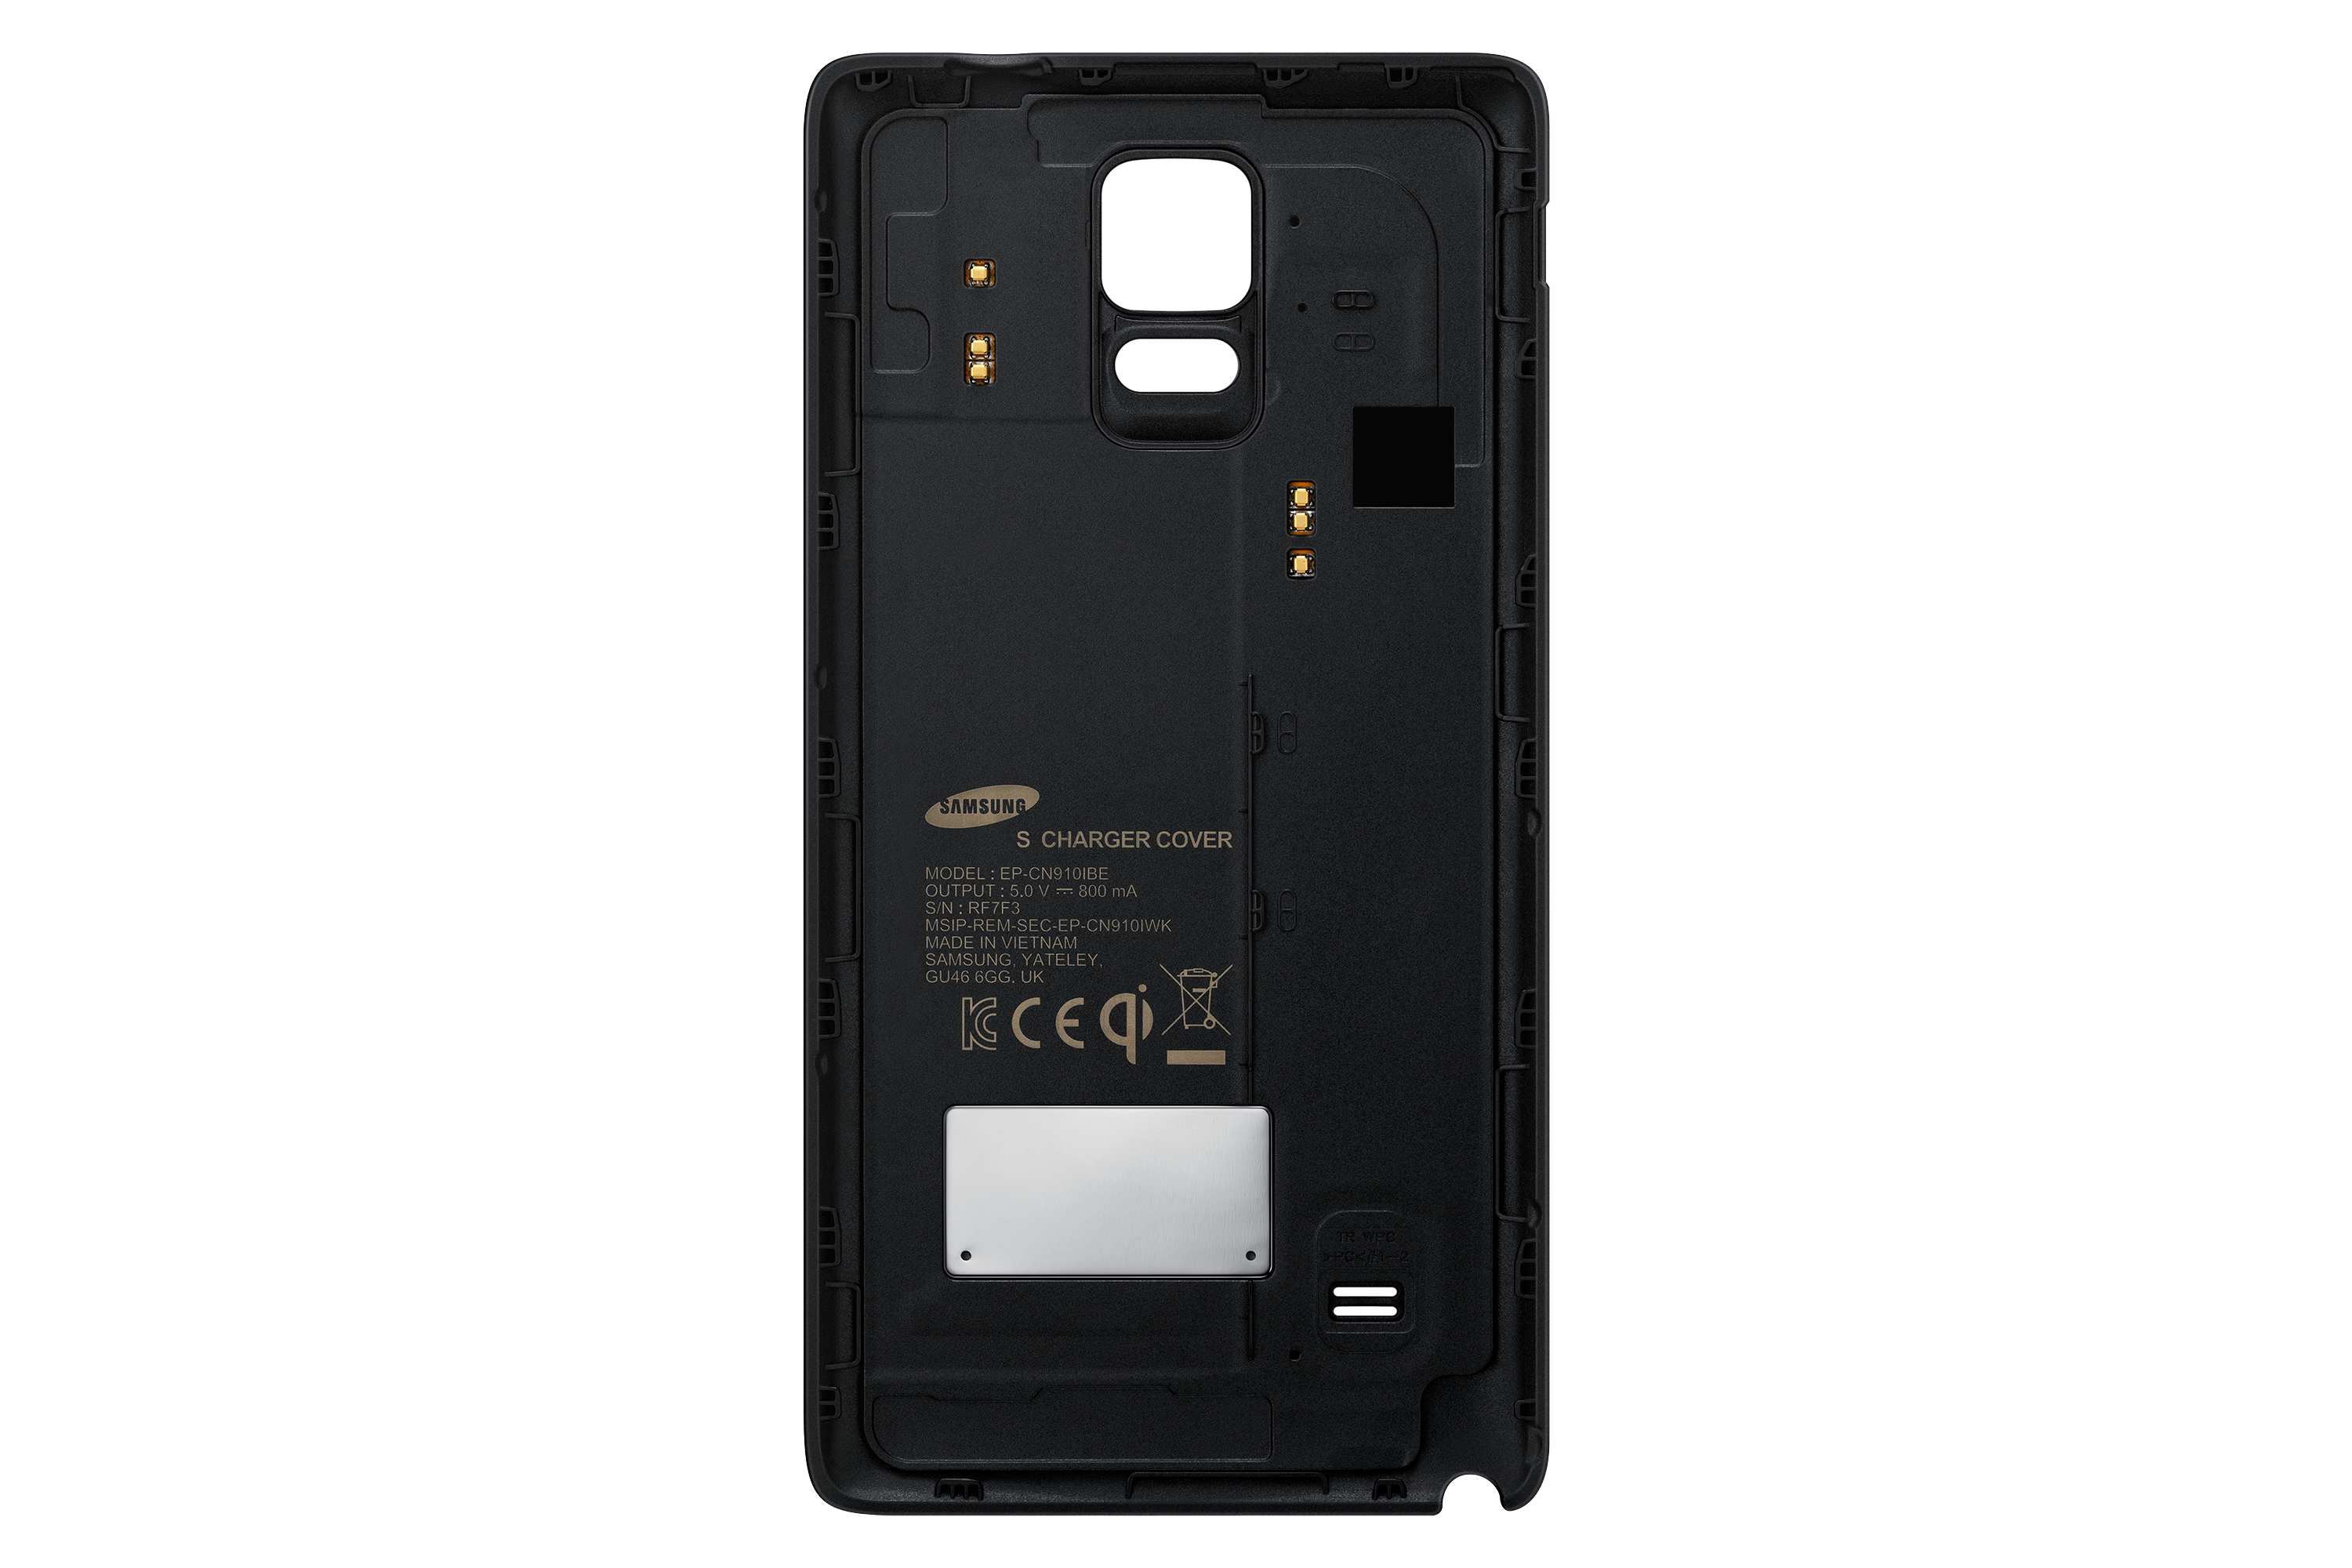 S Charger Cover (Galaxy Note4)